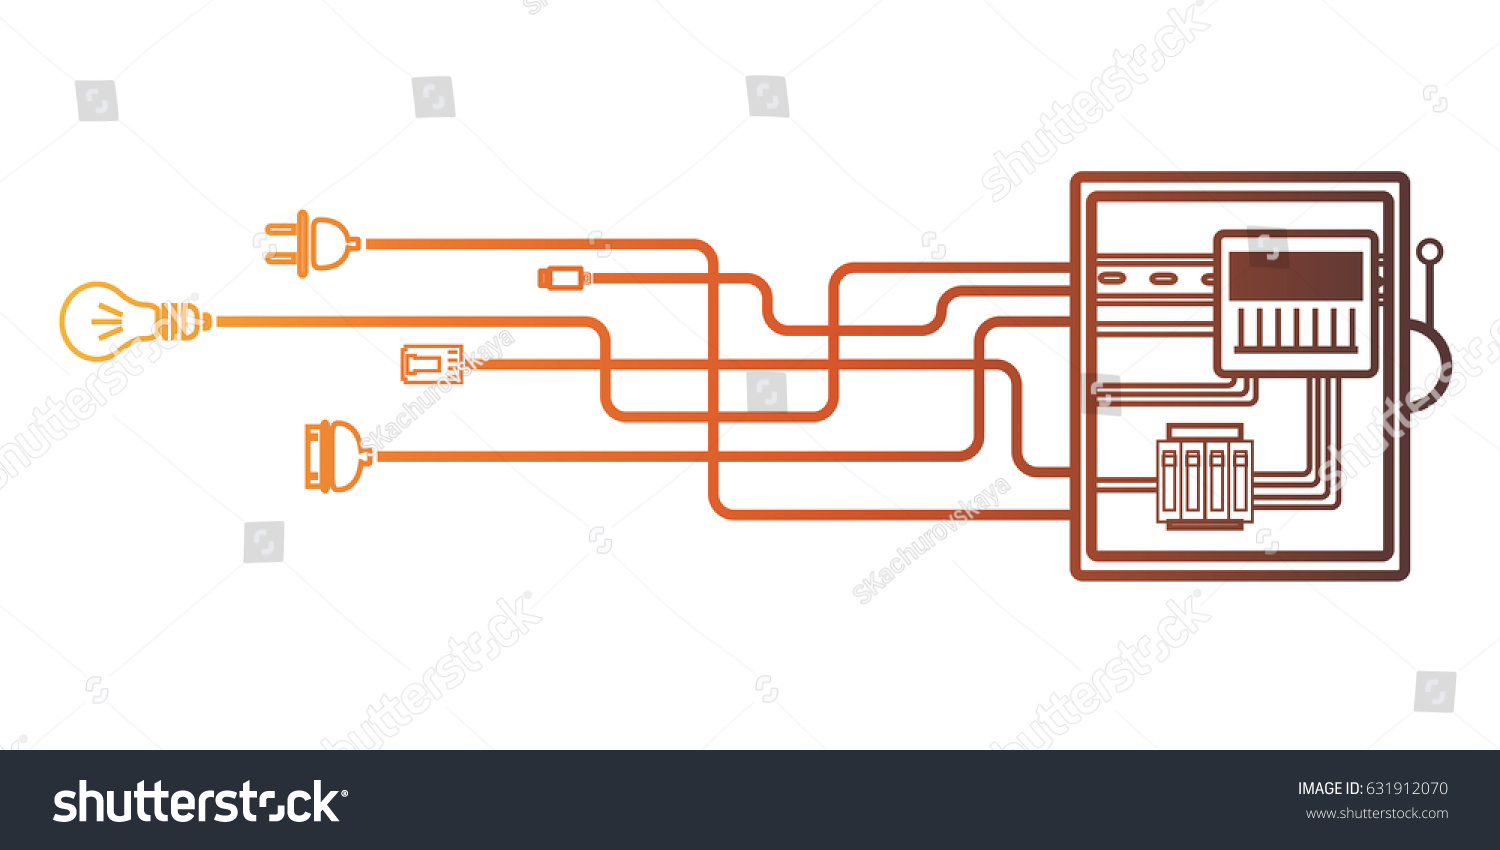 Electrical Panel Switch Wires Electric Meter Stock Vector Royalty Box Wiring Diagram With In On White Background